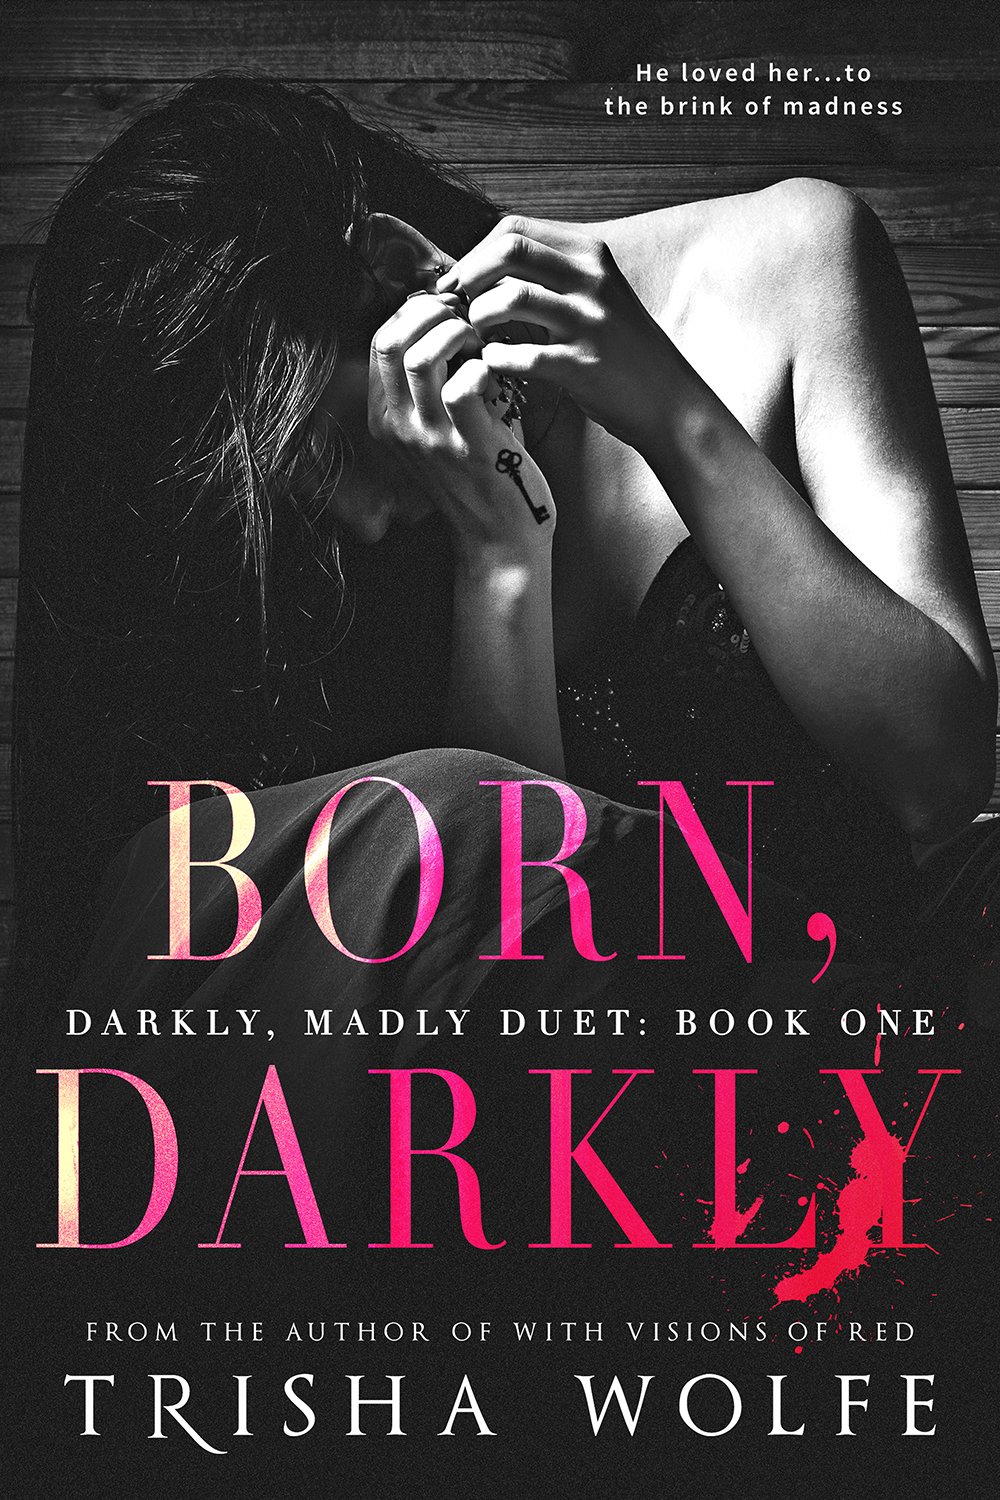 Born, Darkly: Darkly, Madly Duet, Book One